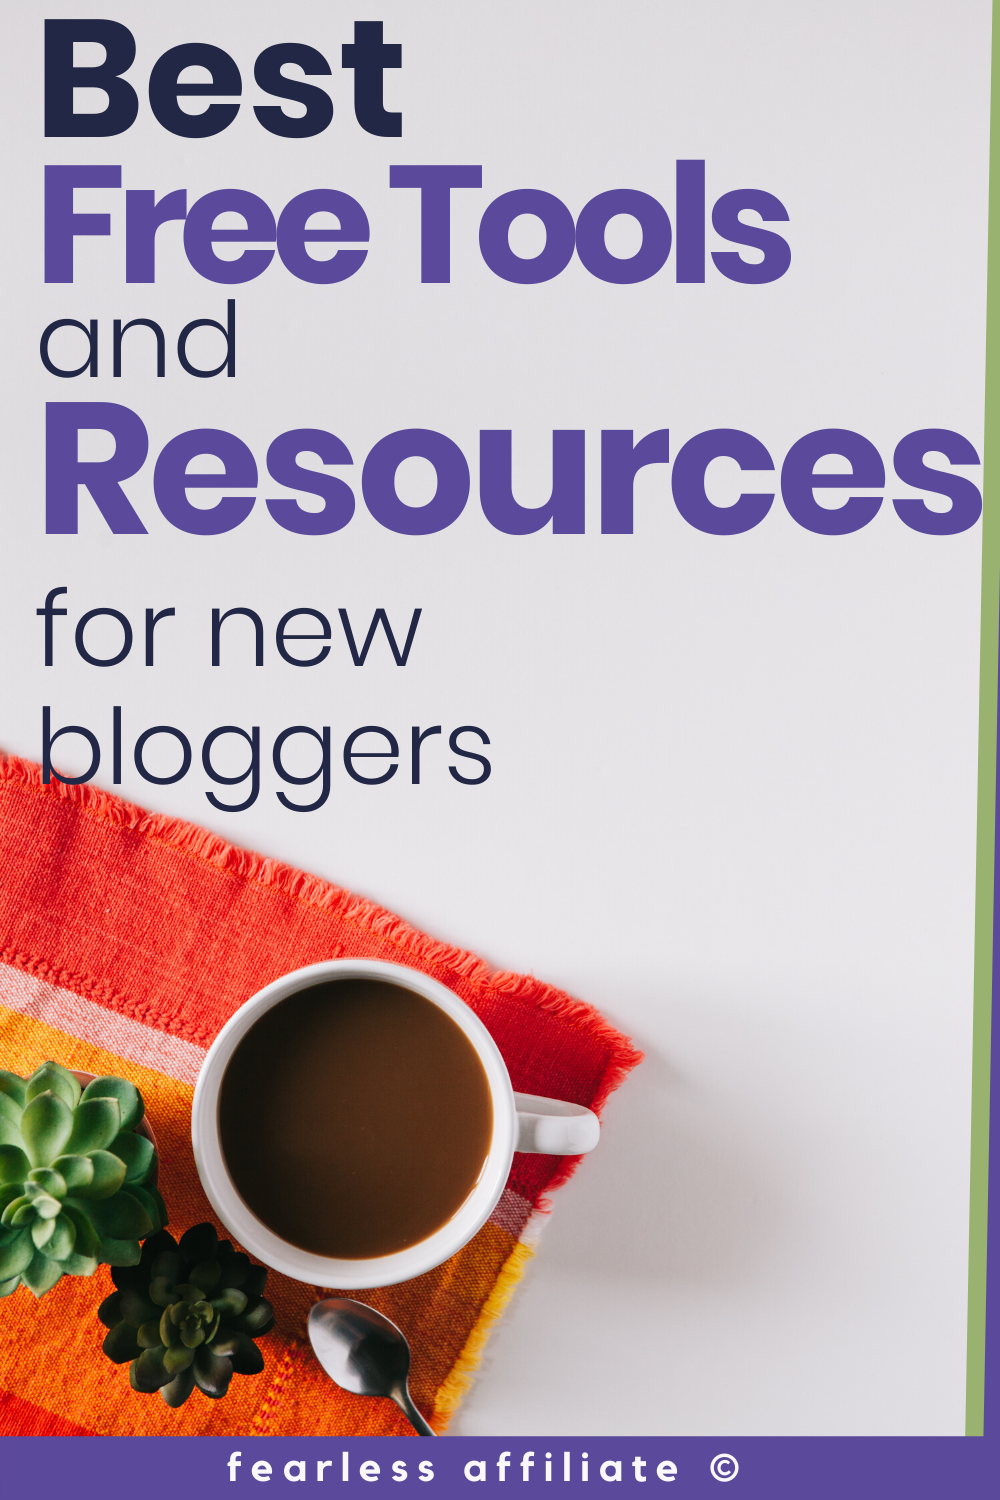 Best Free Blogging Tools and Resources